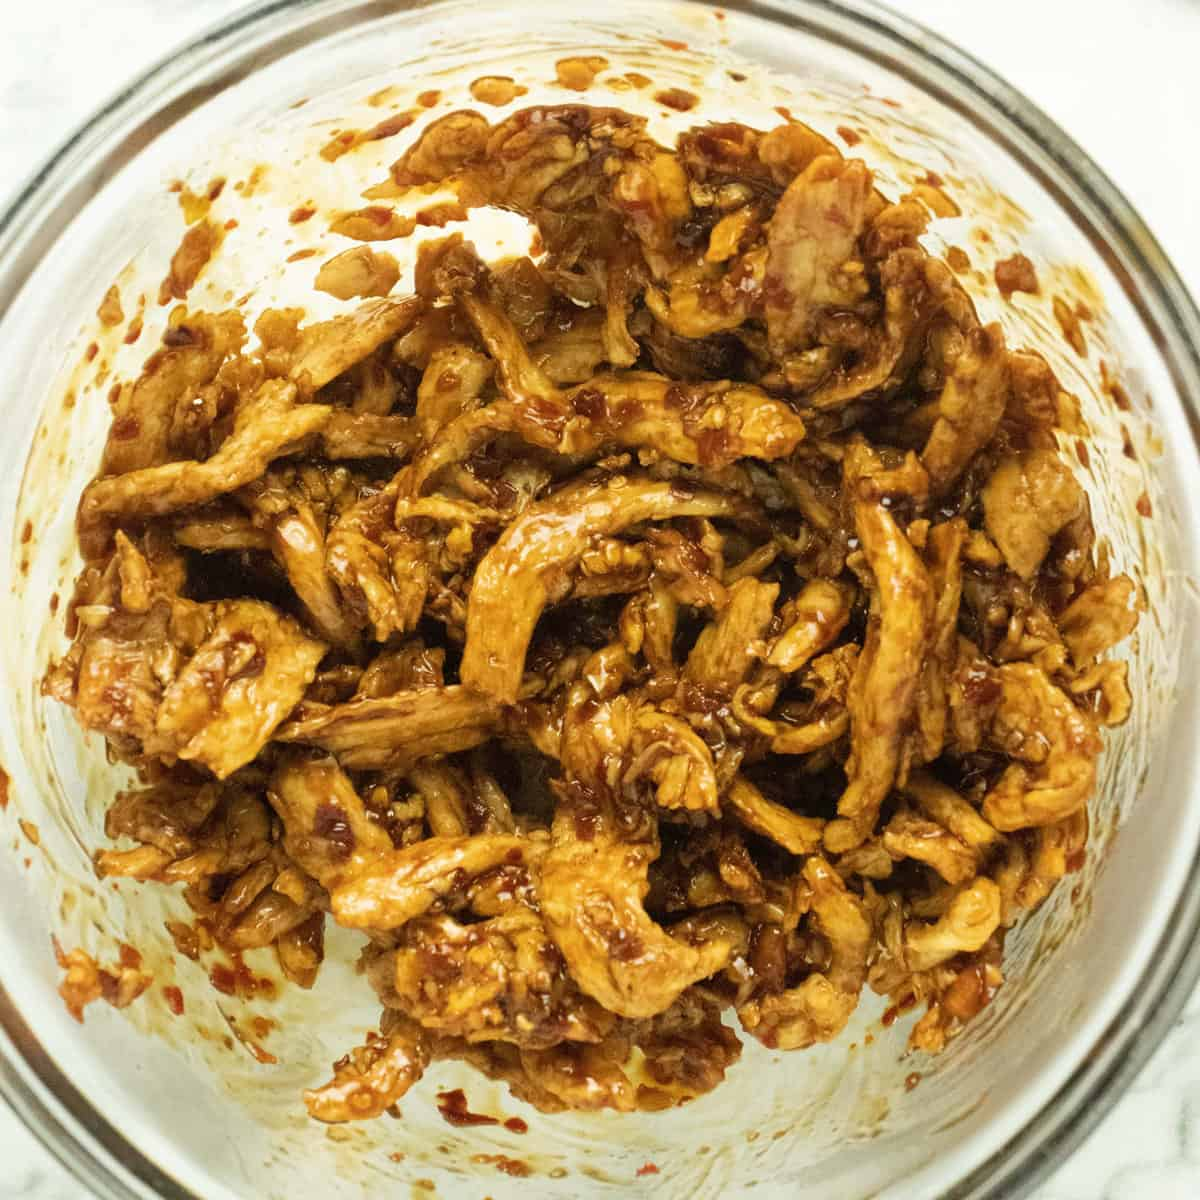 reconstituted soy curls tossed with vegan mongolian beef sauce